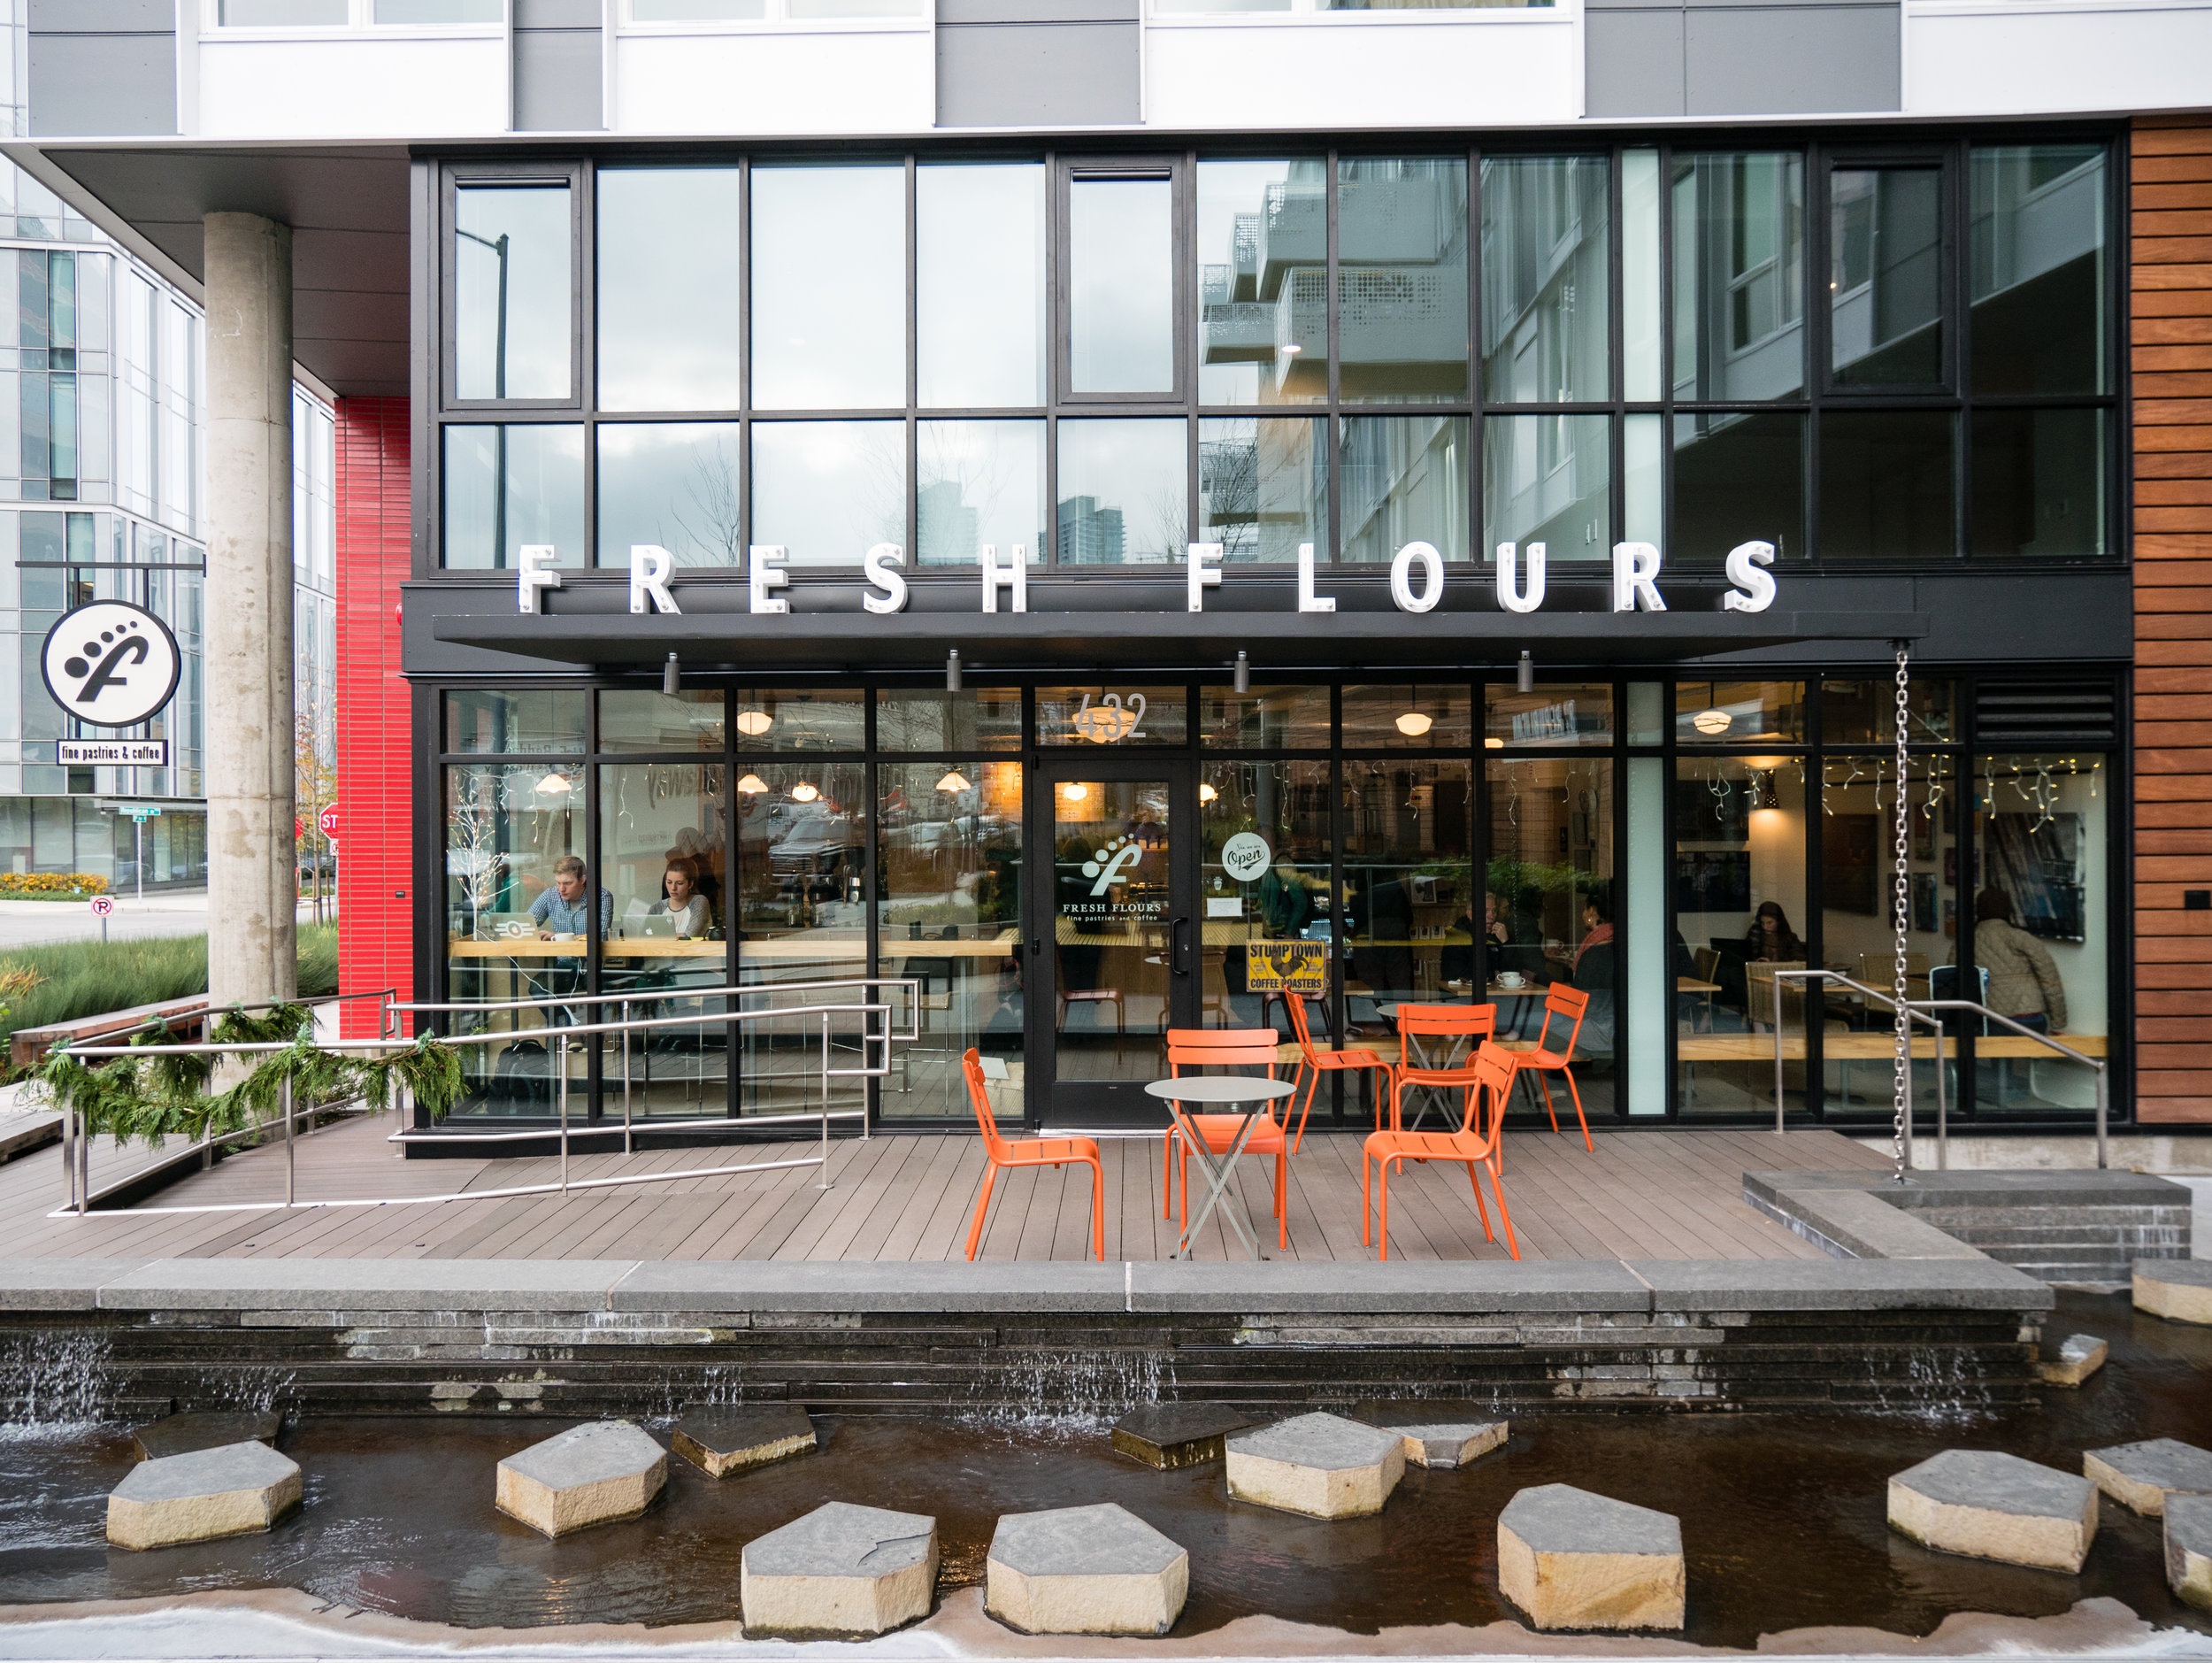 Fresh Flours South Lake Union